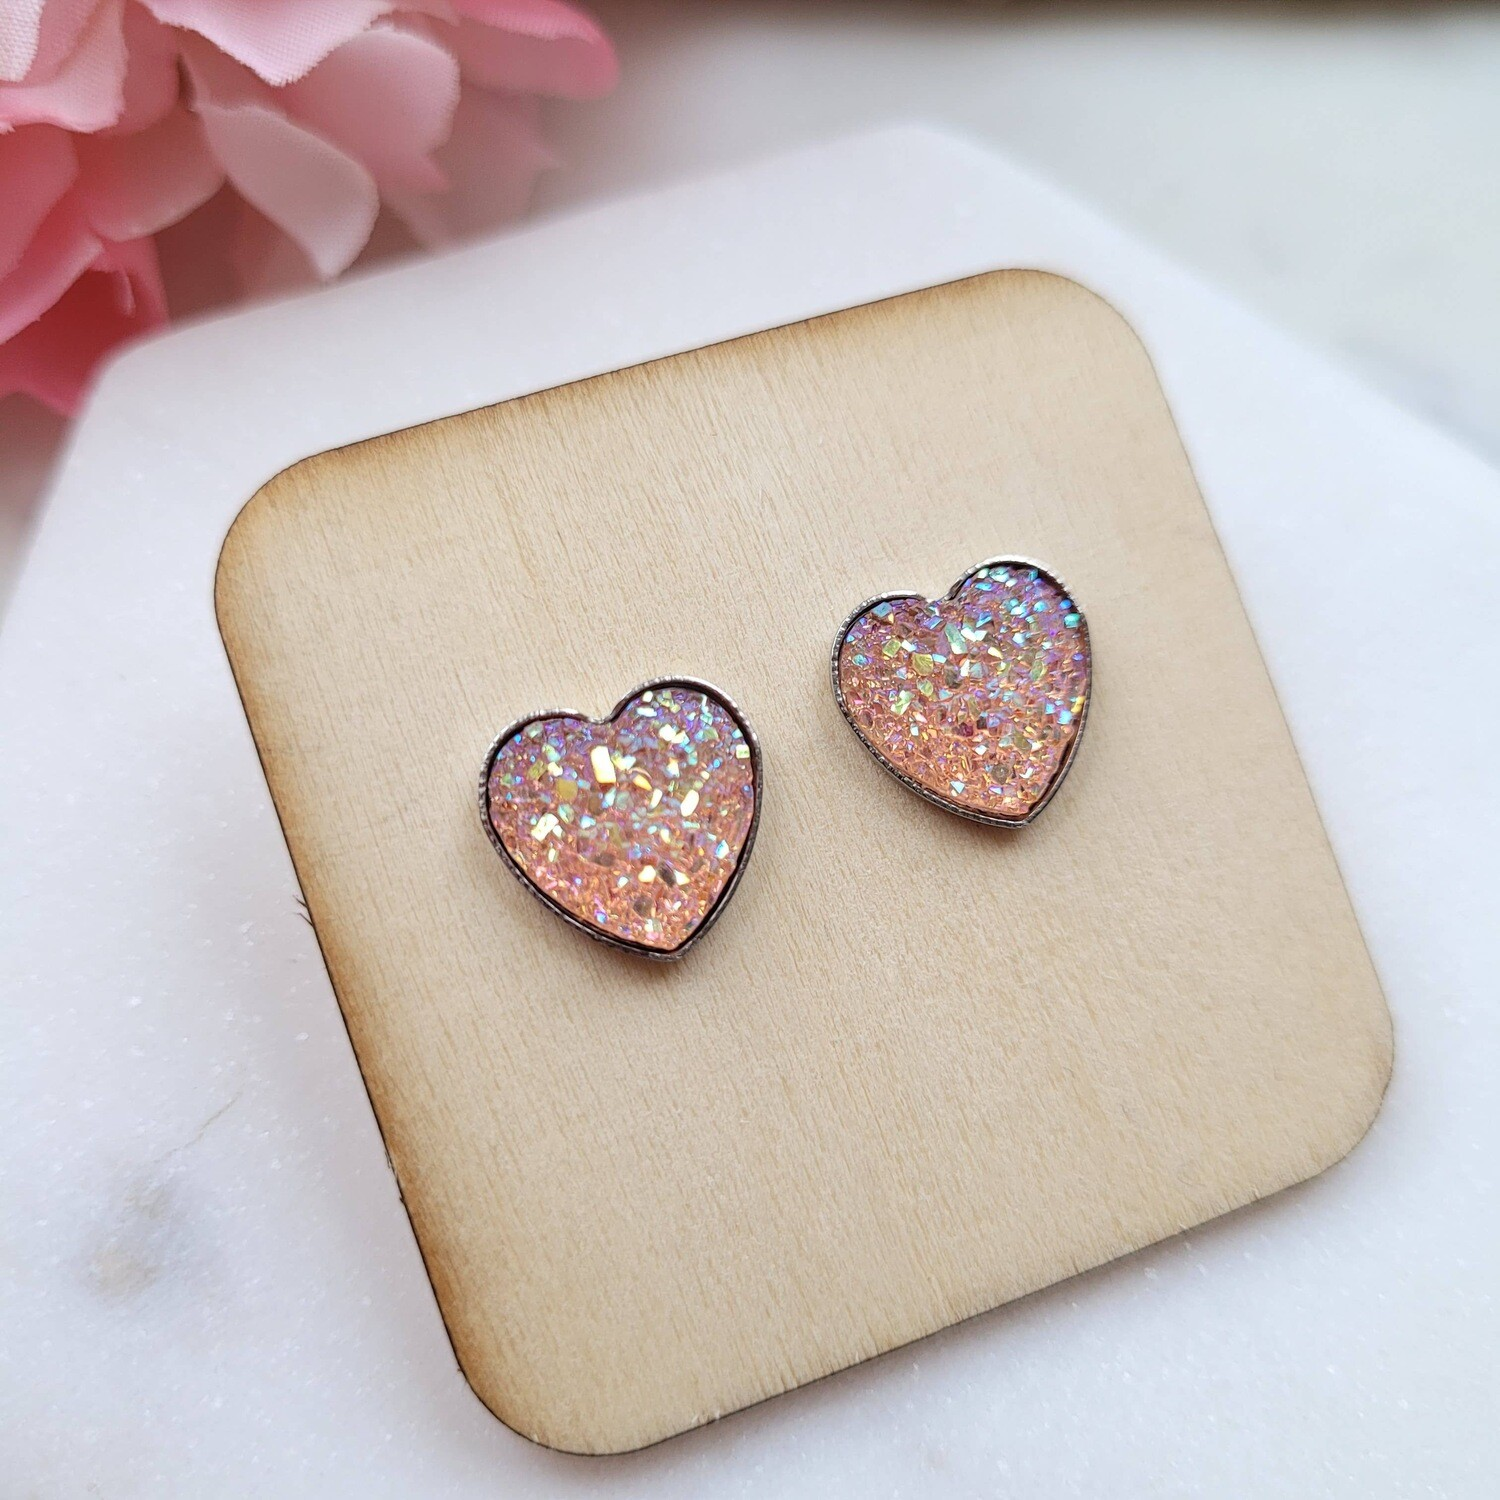 Heart druzy stud earrings light pink